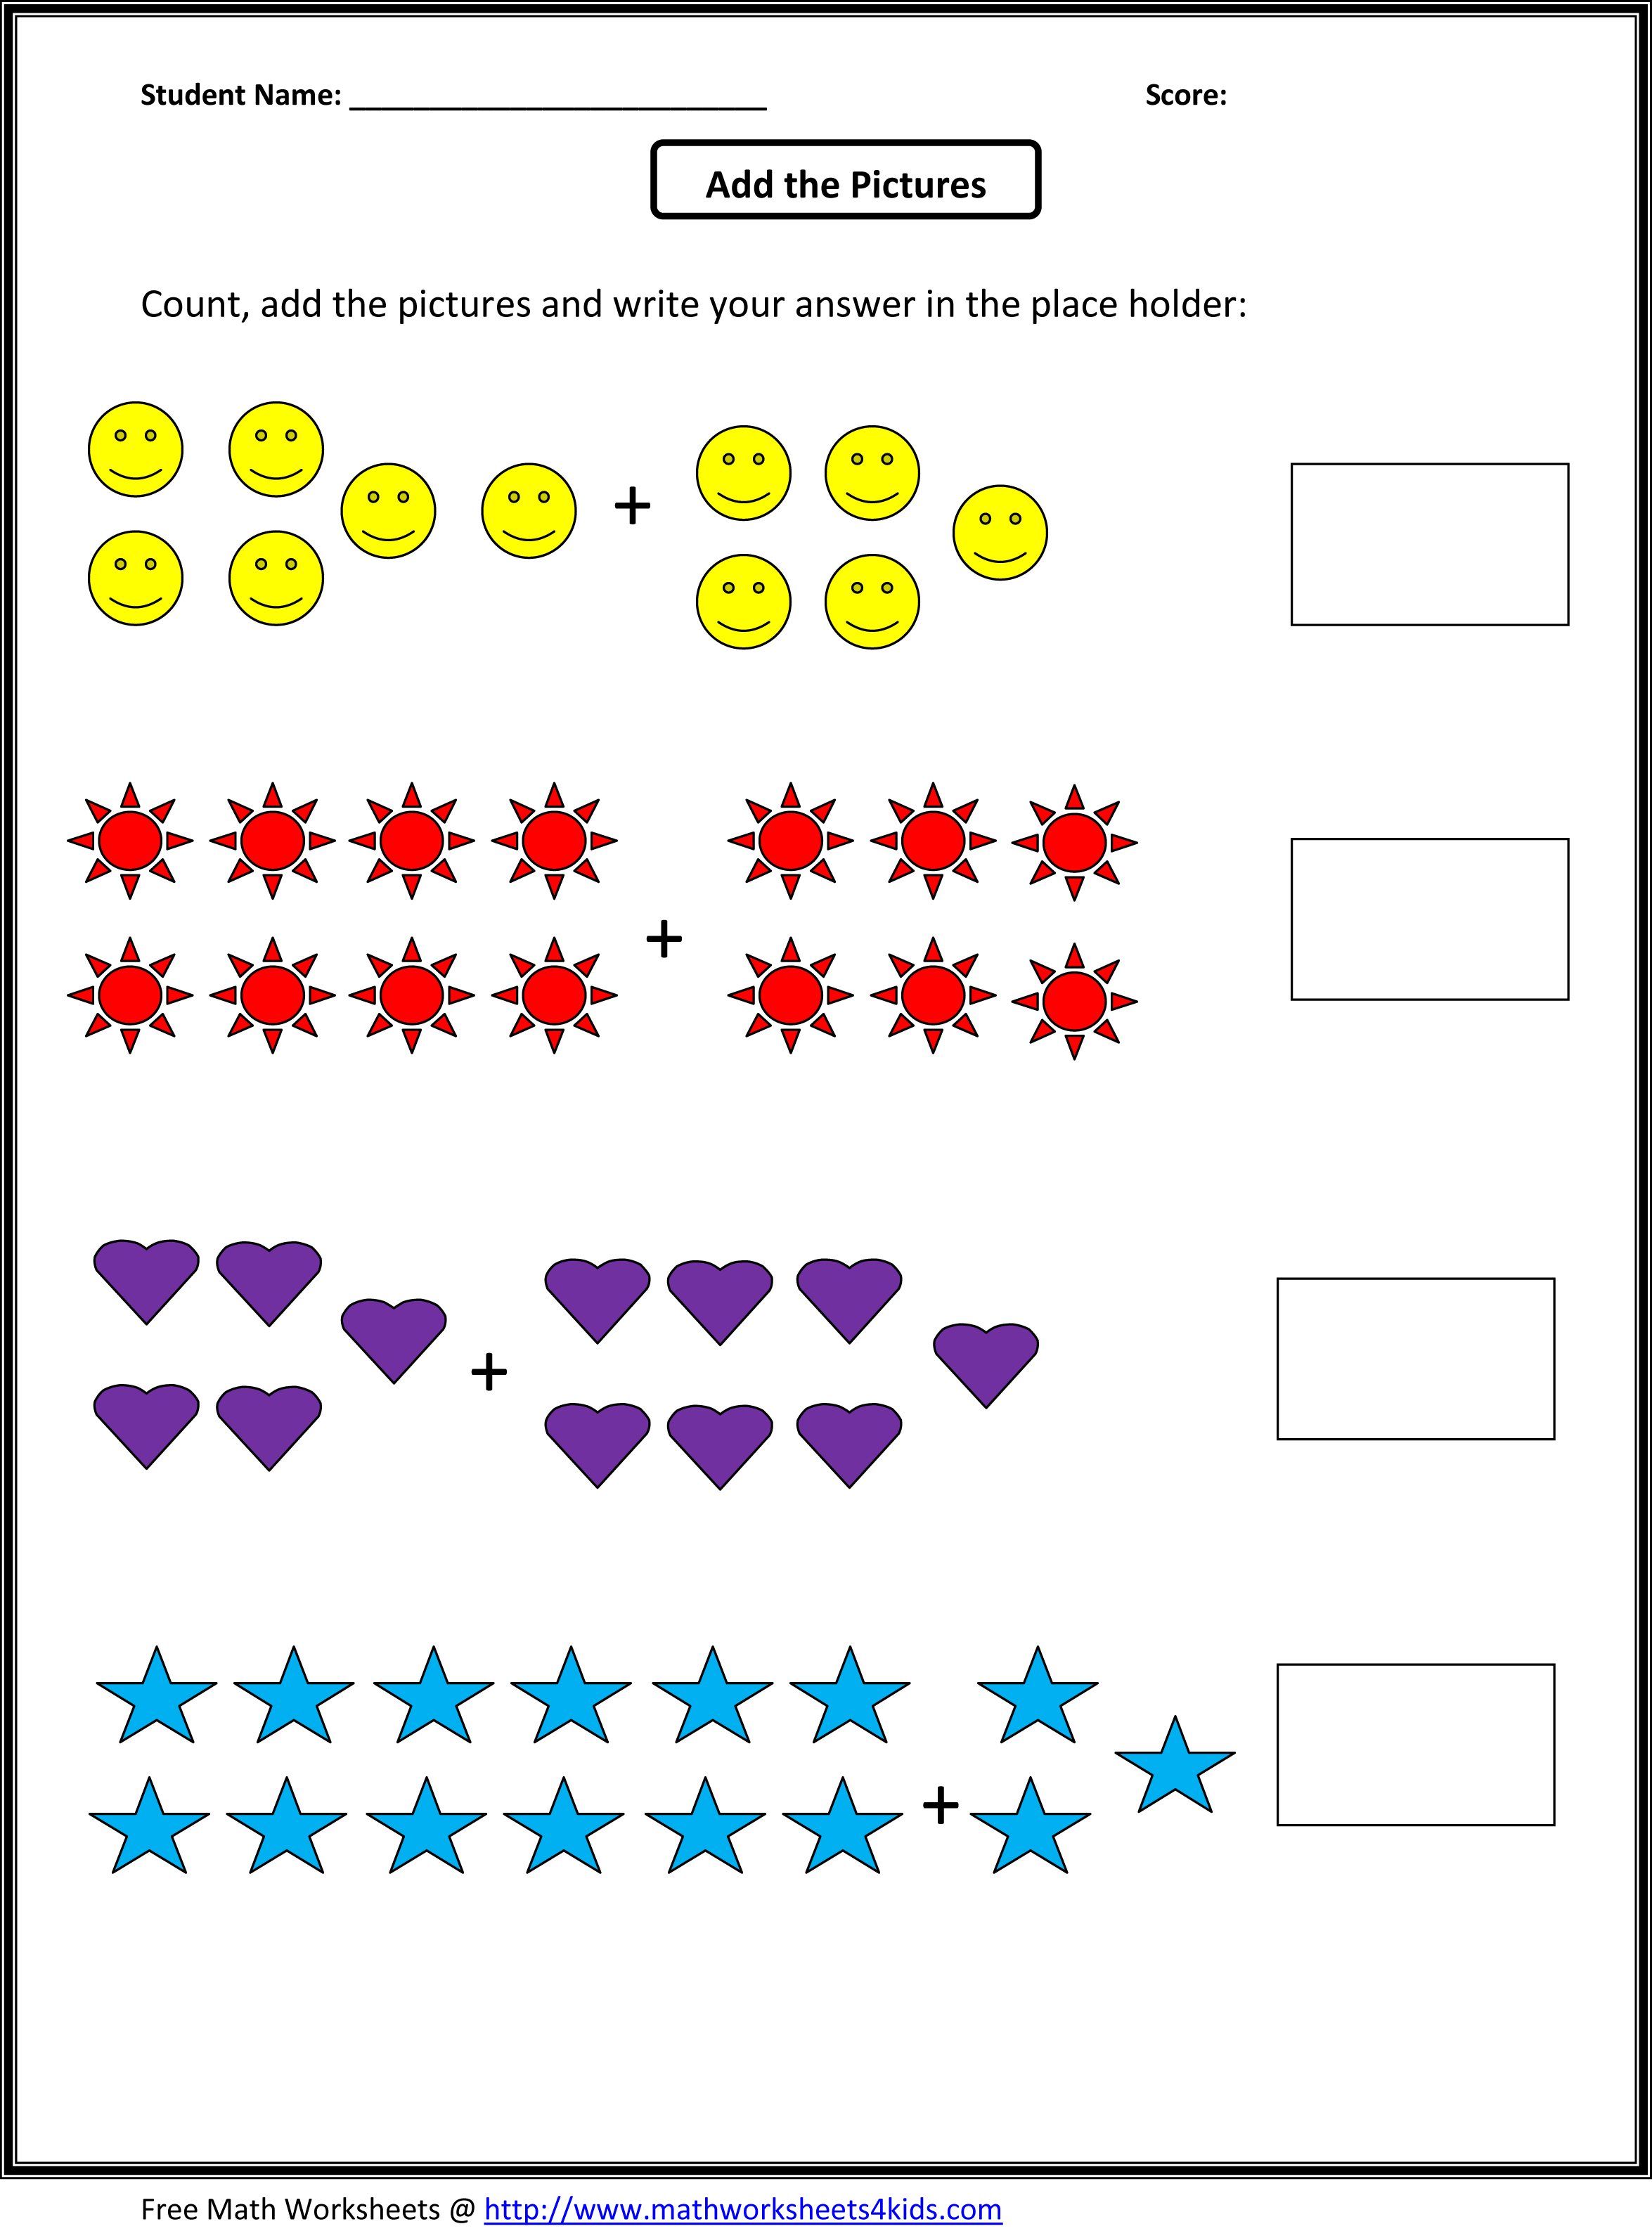 Weirdmailus  Prepossessing Grade  Maths Worksheet  Reocurent With Handsome Math Worksheets For St Grade Free  Reocurent With Extraordinary Adding  Digit Numbers With Regrouping Worksheets Also St Grade Counting Worksheets In Addition Class Worksheets Printables For Free And Maths Worksheets Year  As Well As Counting Pictures Worksheets Additionally Translation Maths Worksheets From Reocurentcom With Weirdmailus  Handsome Grade  Maths Worksheet  Reocurent With Extraordinary Math Worksheets For St Grade Free  Reocurent And Prepossessing Adding  Digit Numbers With Regrouping Worksheets Also St Grade Counting Worksheets In Addition Class Worksheets Printables For Free From Reocurentcom